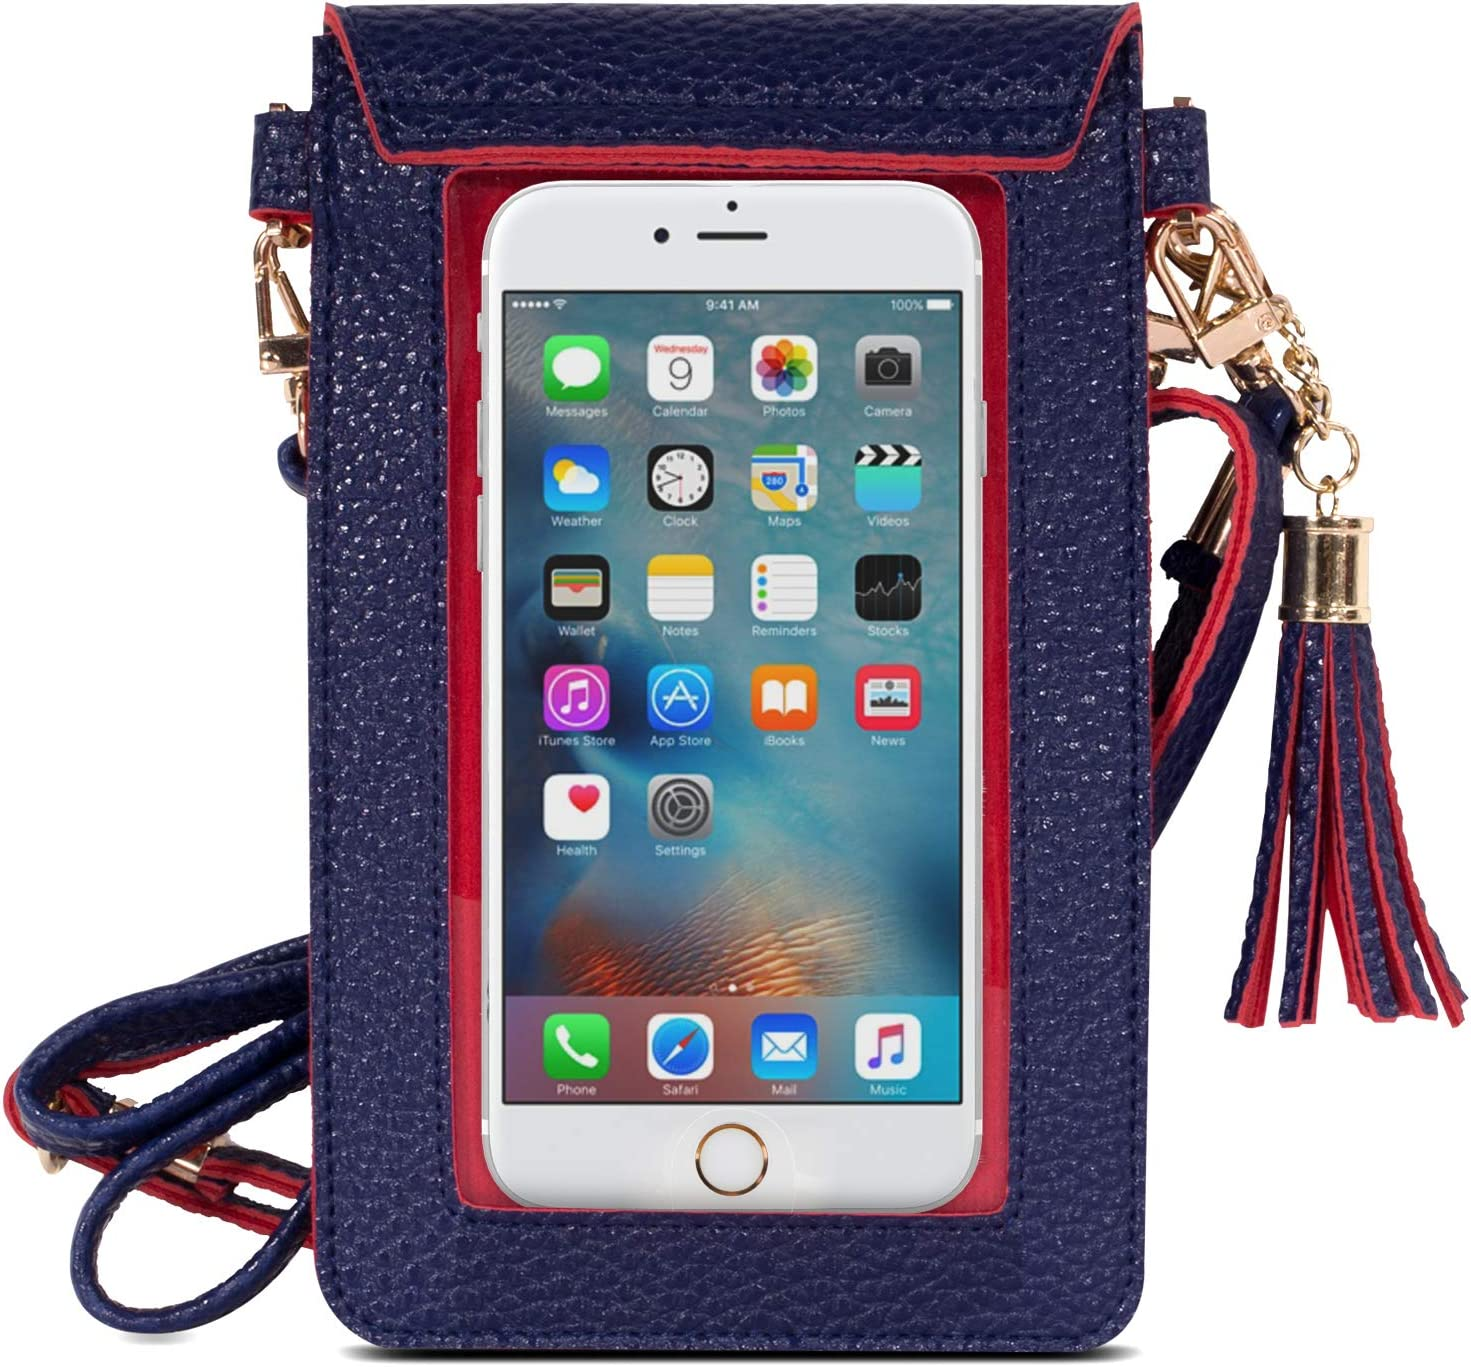 Womens Mobile Phone Bag Crossbody Mobile Phone Pouch Wallet for Women Dragon Honor Touchable PU Leather Change Bag